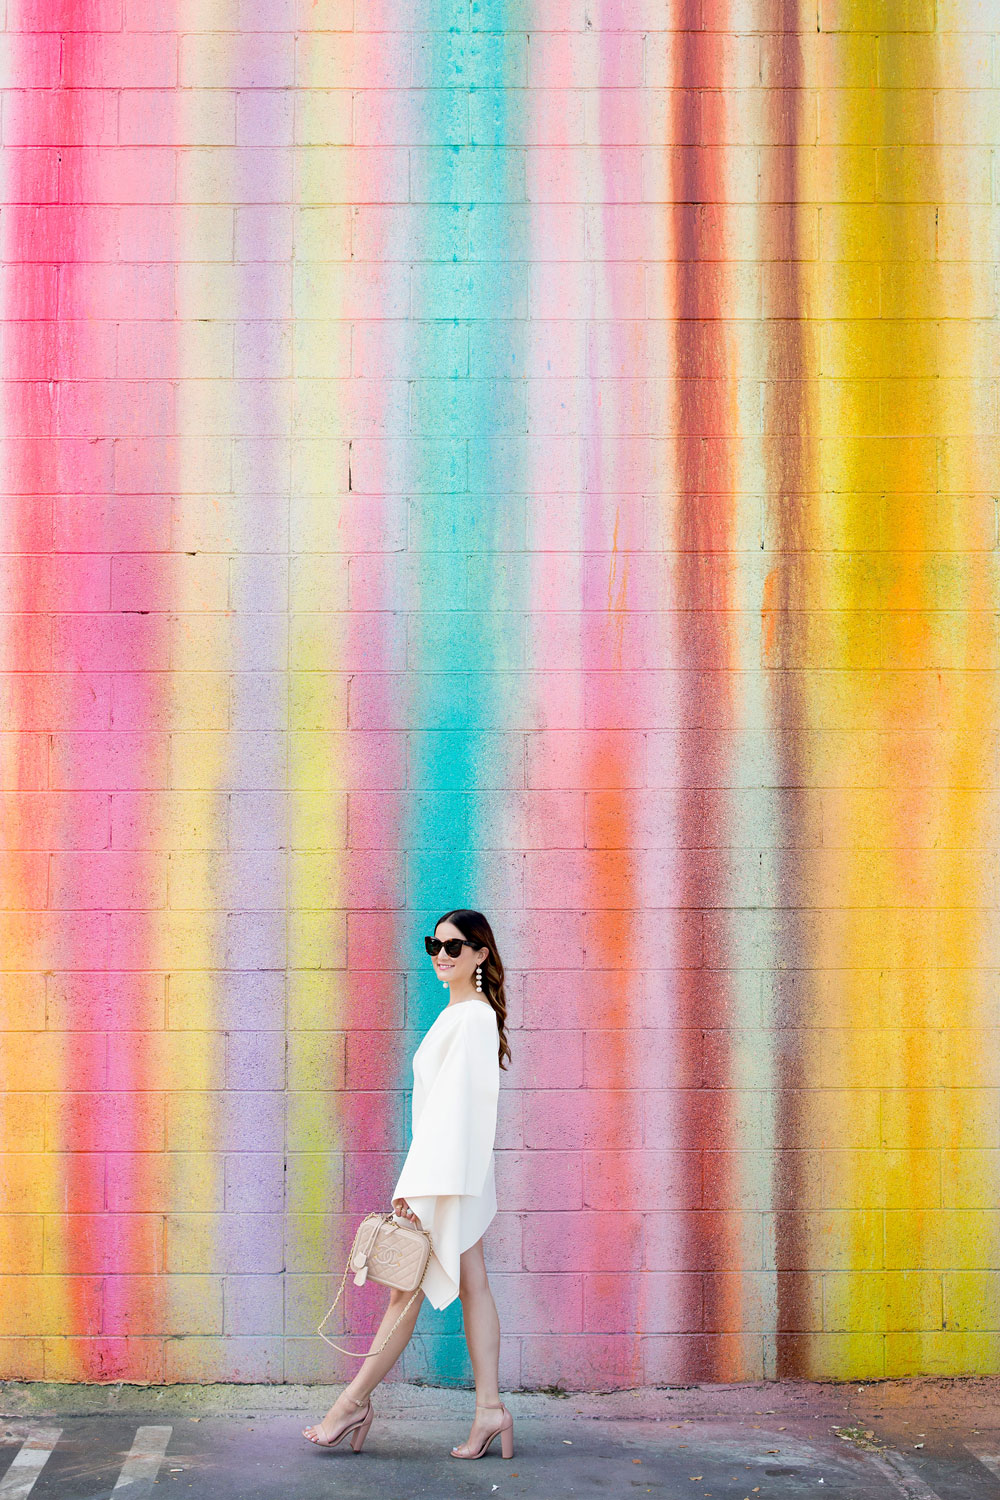 Los Angeles Dripping Paint Mural